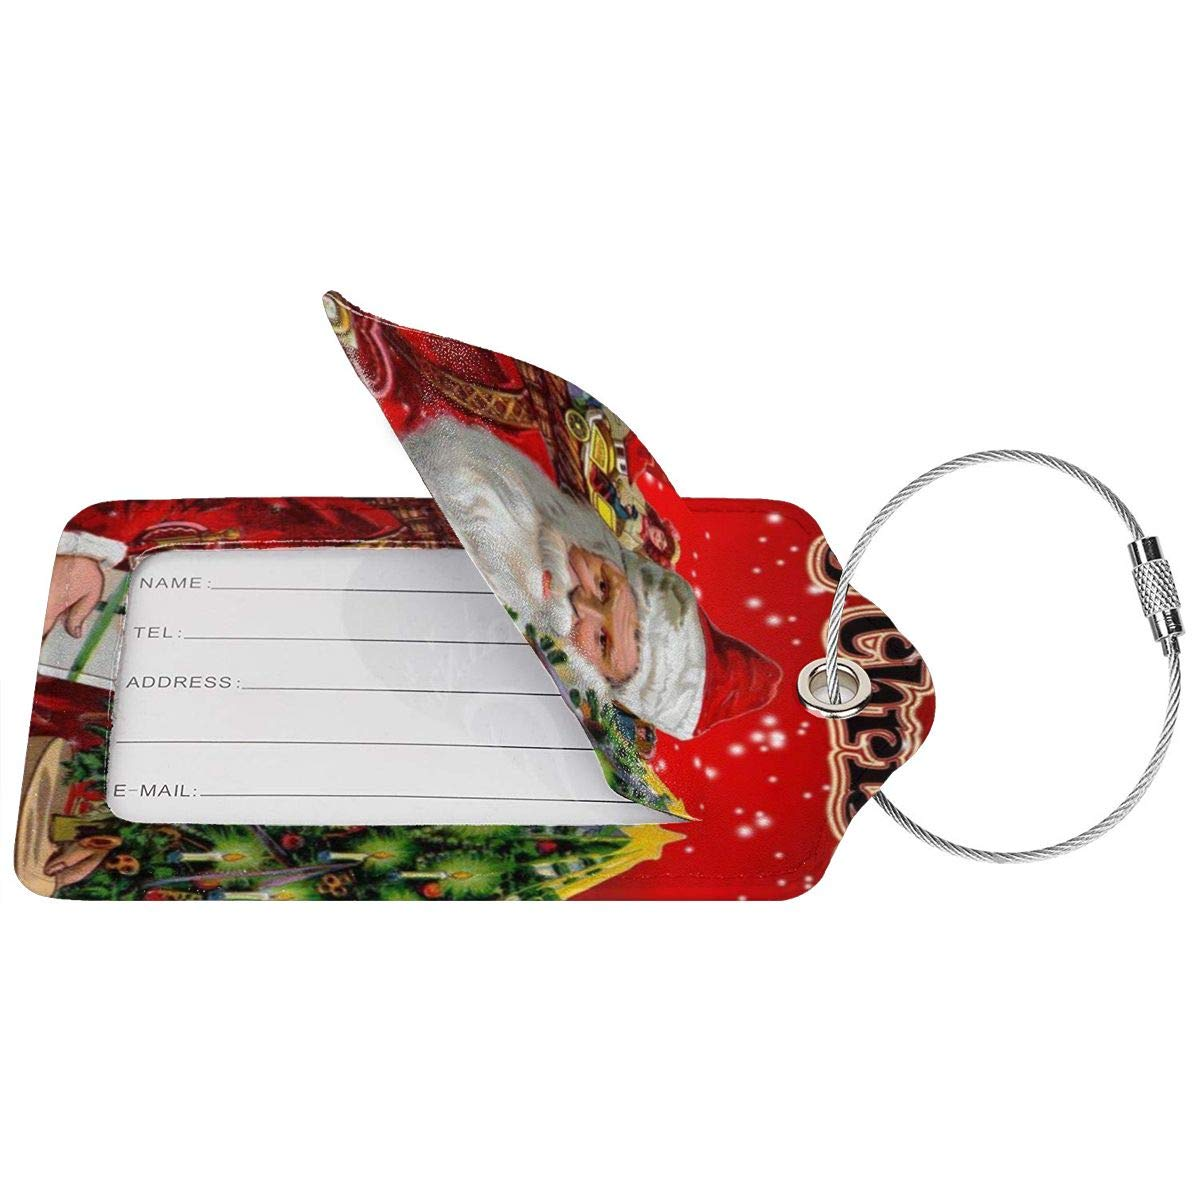 Retro Santa Claus Xmas Tree Ribbon Bow Bell Leather Luggage Tags Personalized Privacy Cover With Privacy Flap